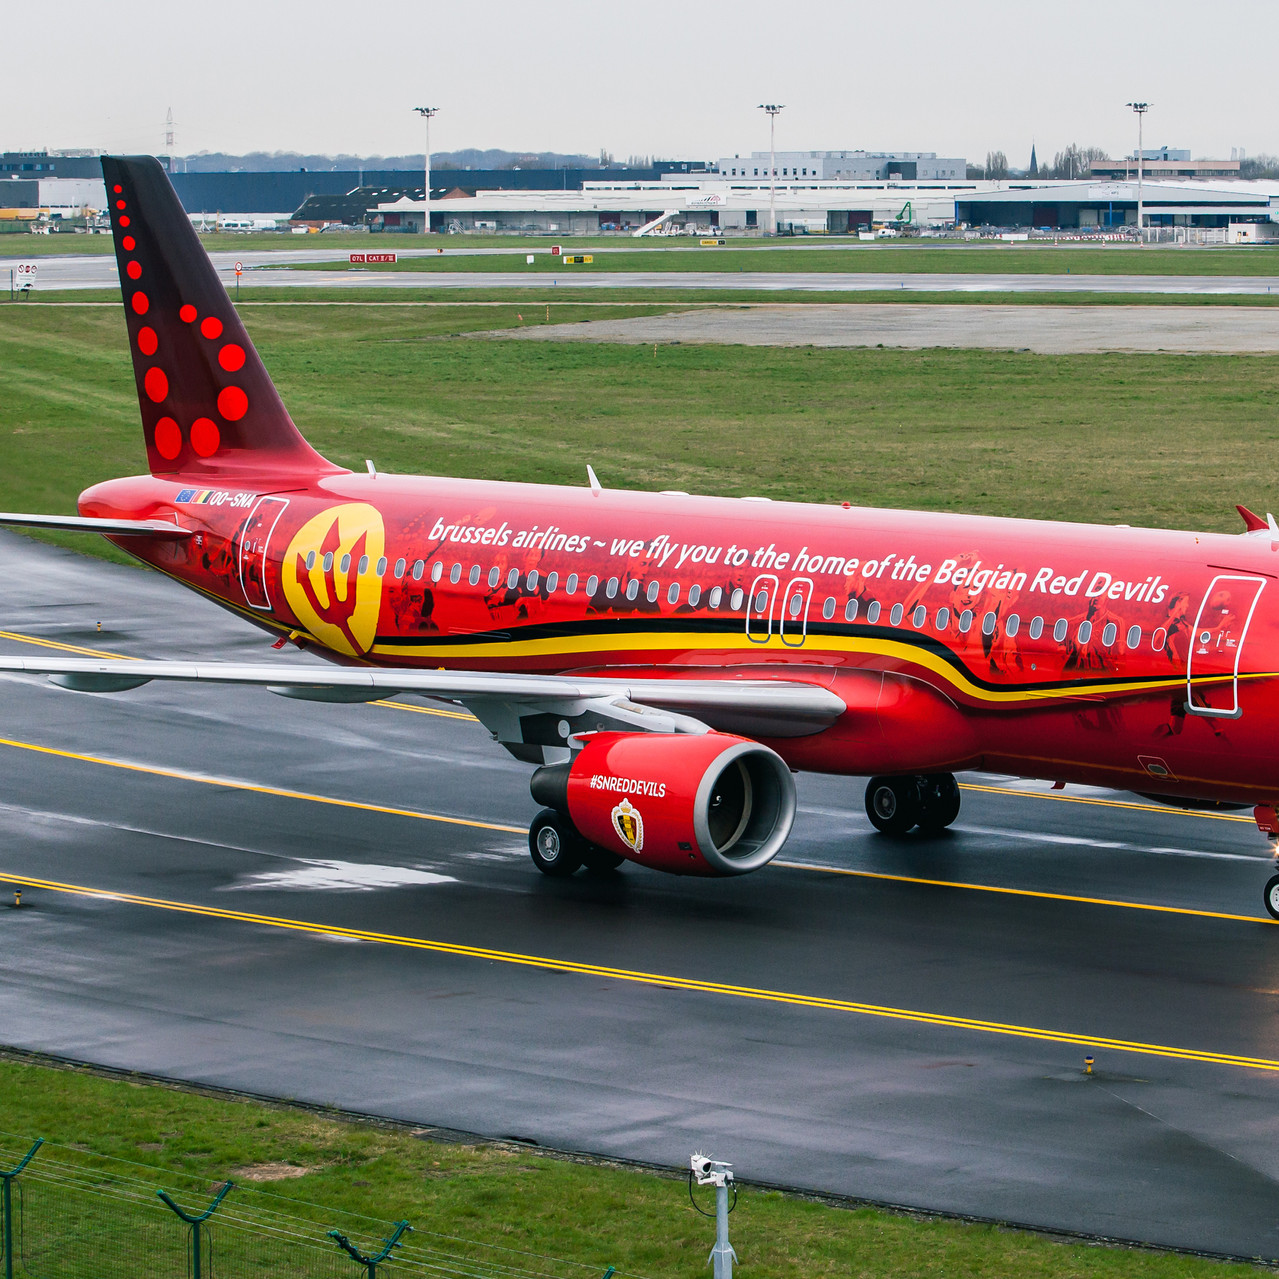 016_Taxiing in after arrival_Brussels Ai